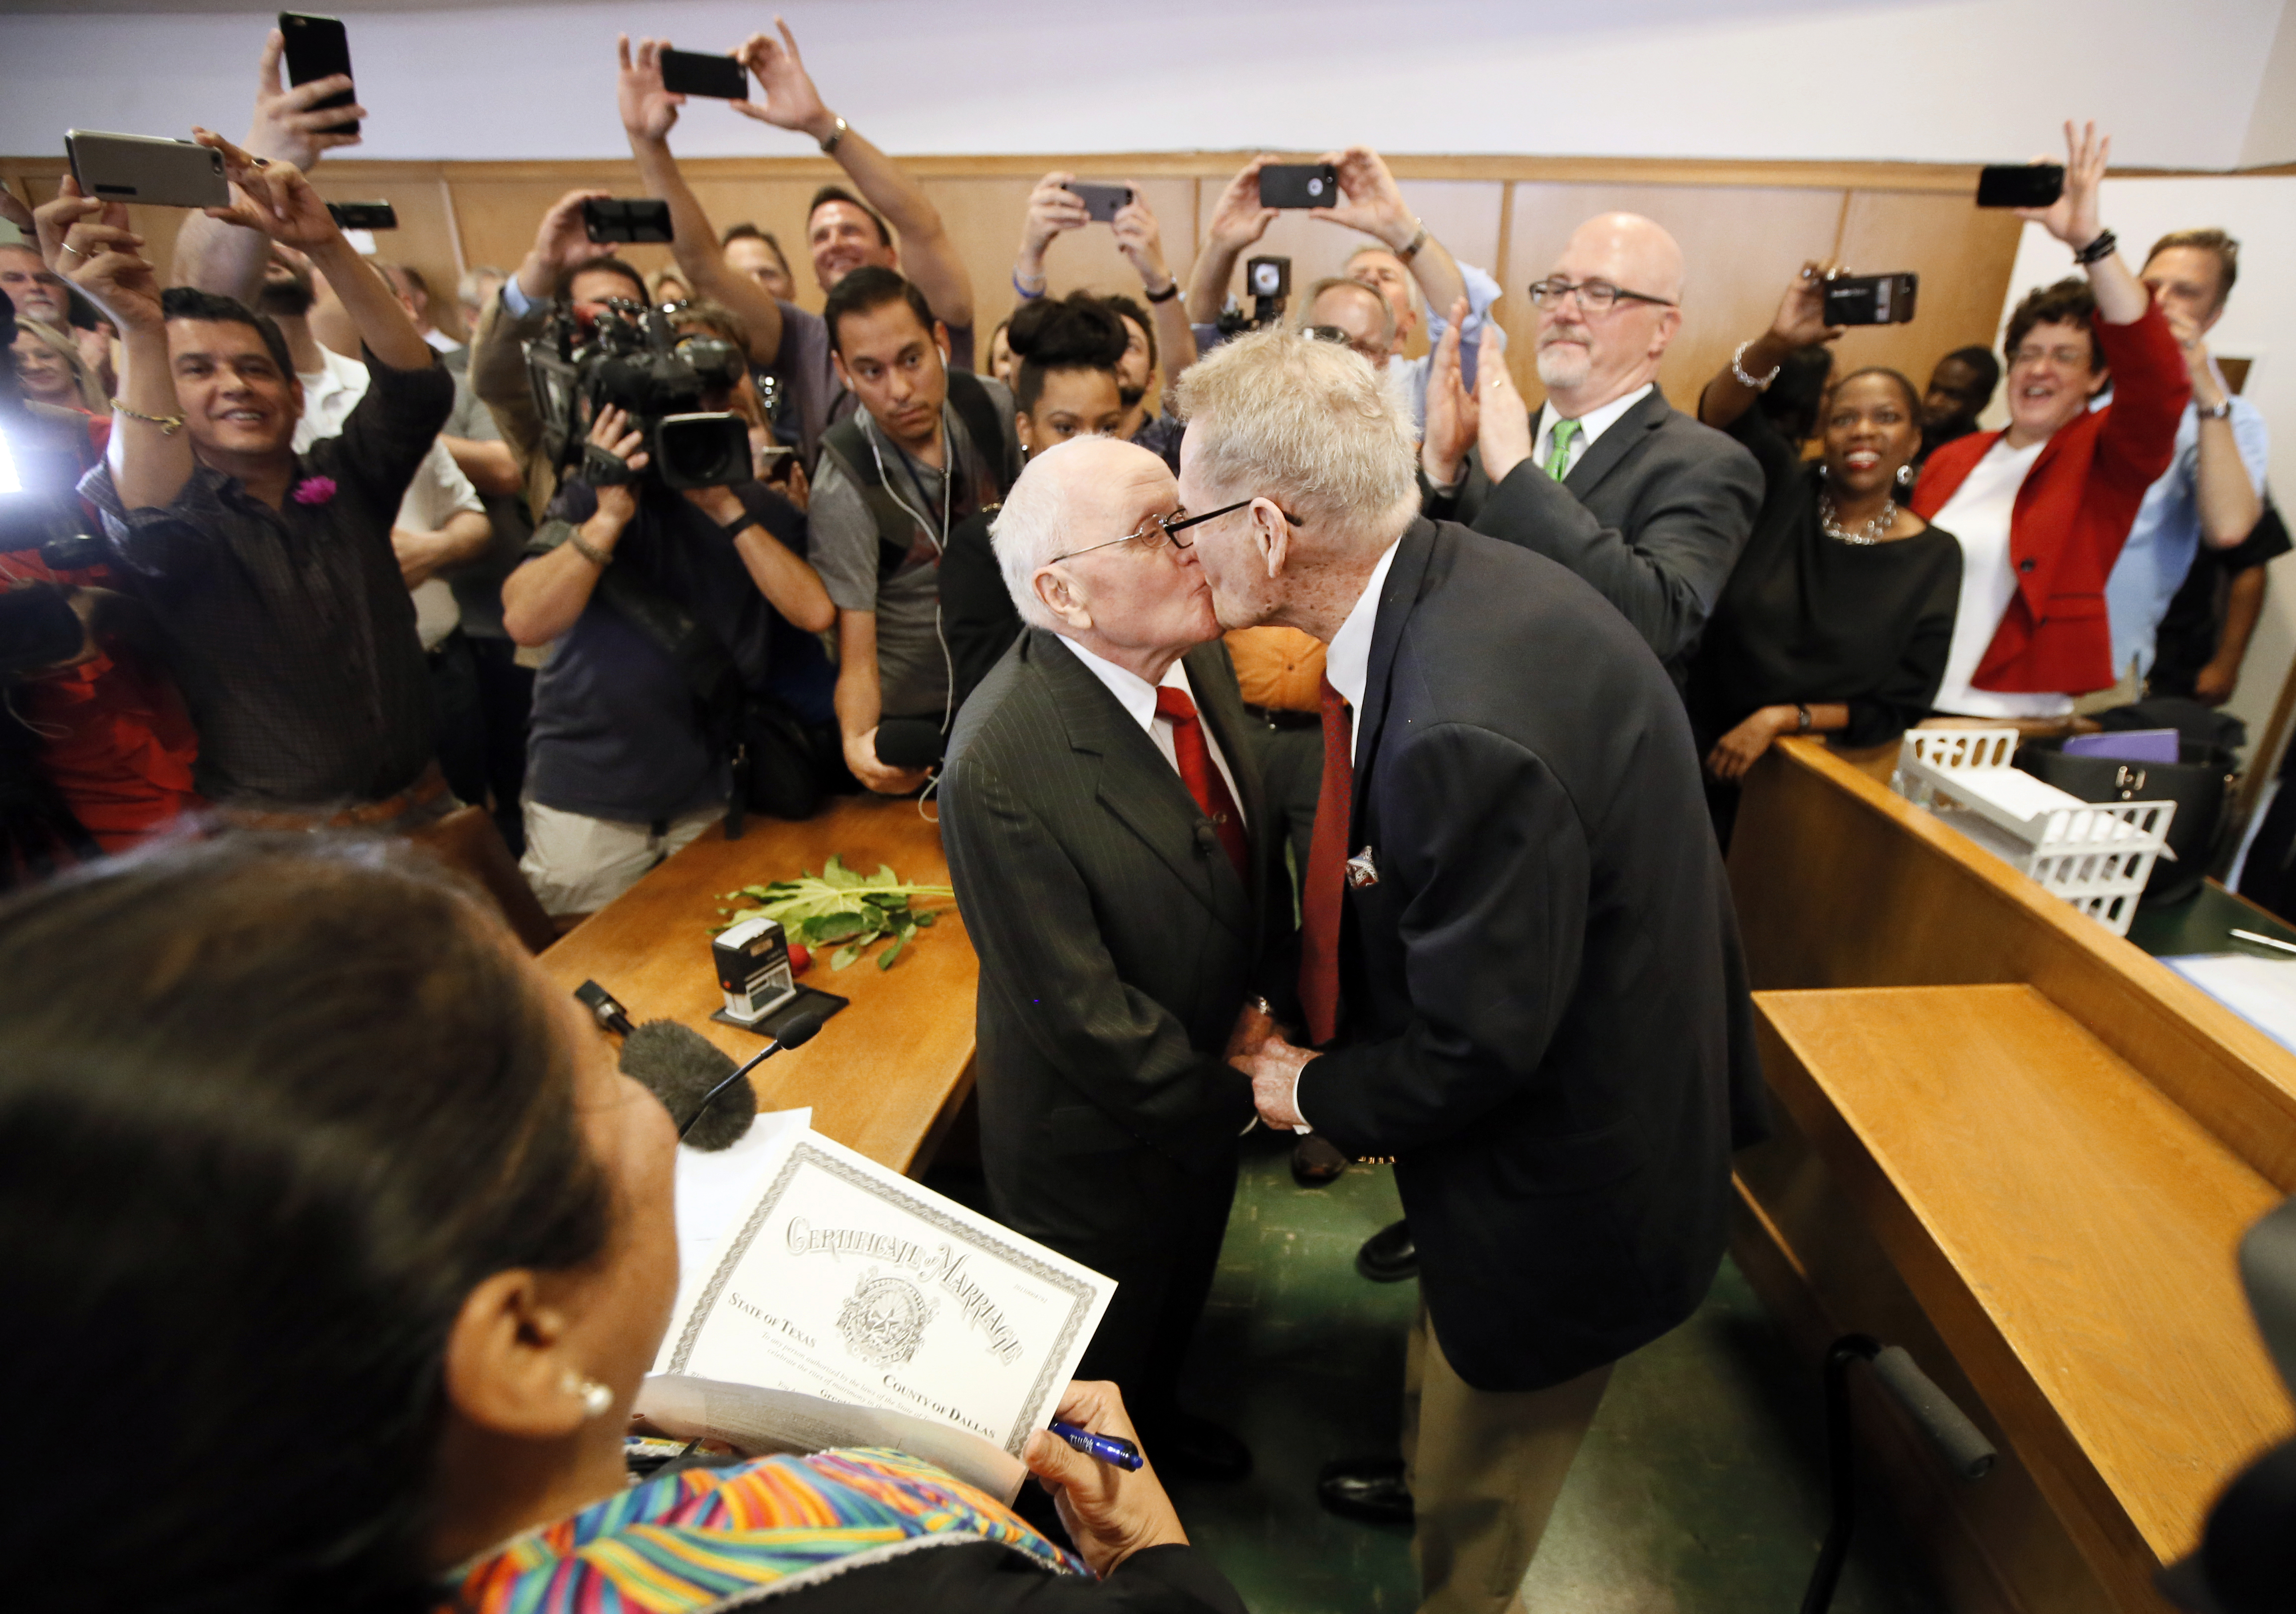 Judge Dennise Garcia, left front, watches as George Harris, center left, 82, and Jack Evans, center right, 85, kiss after being married by Judge Garcia in Dallas on June 26, 2015.